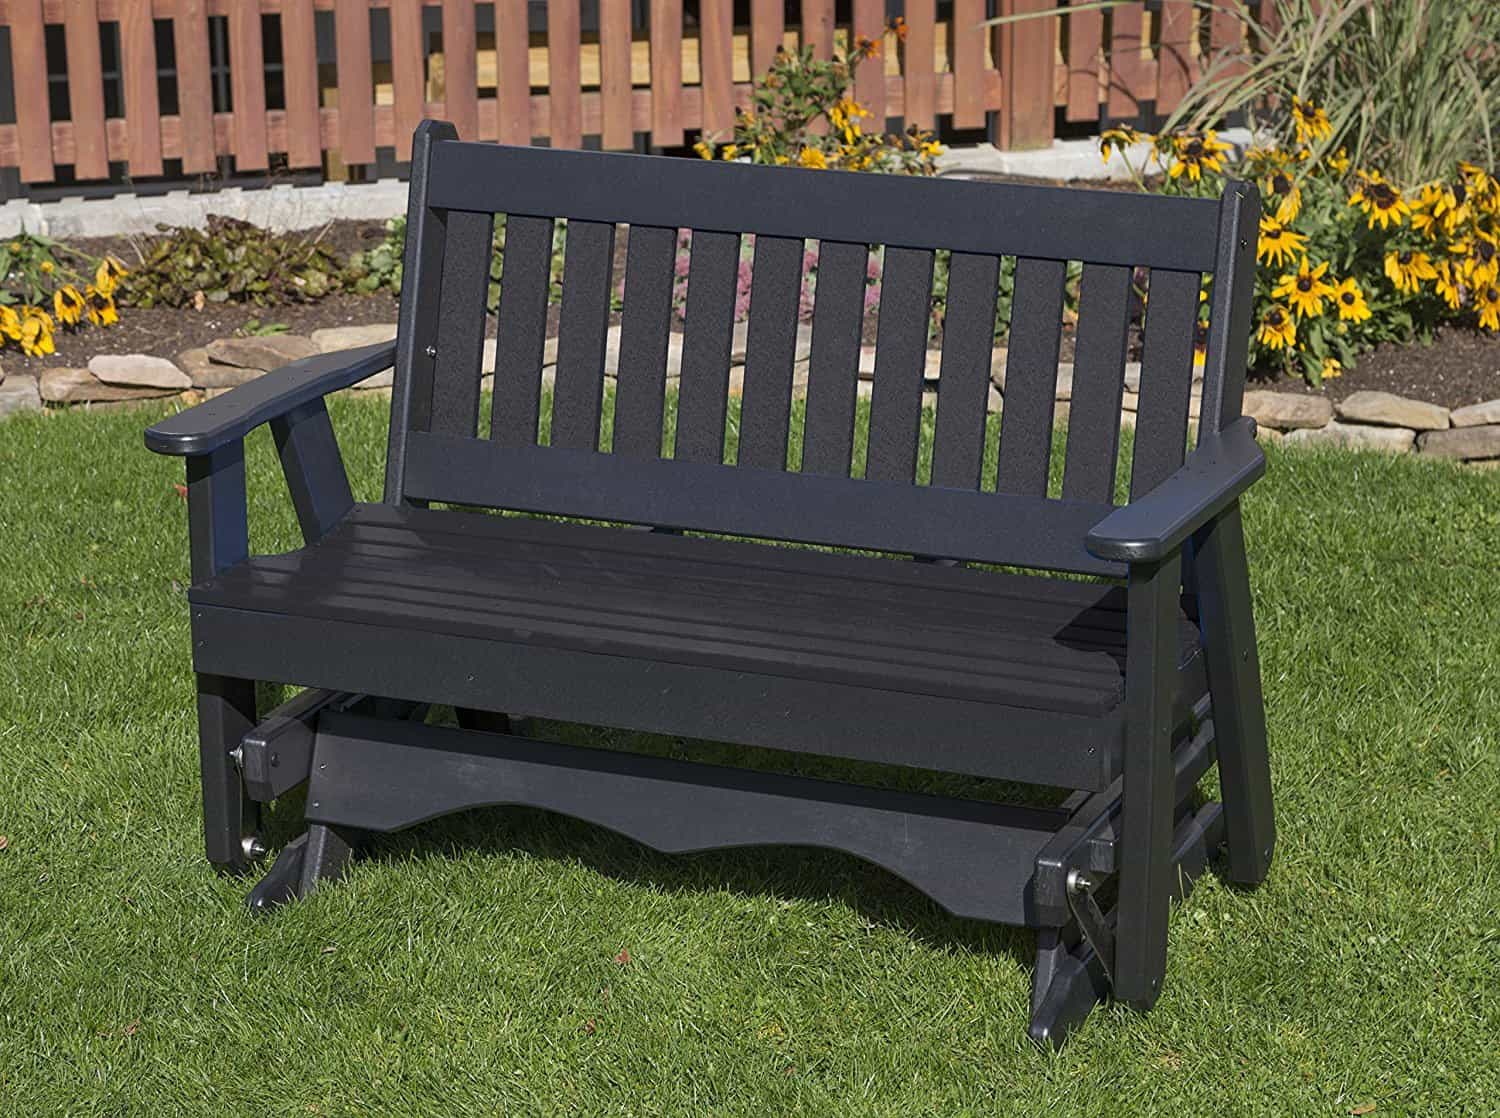 Outdoor Patio Furniture Ecommersify Inc